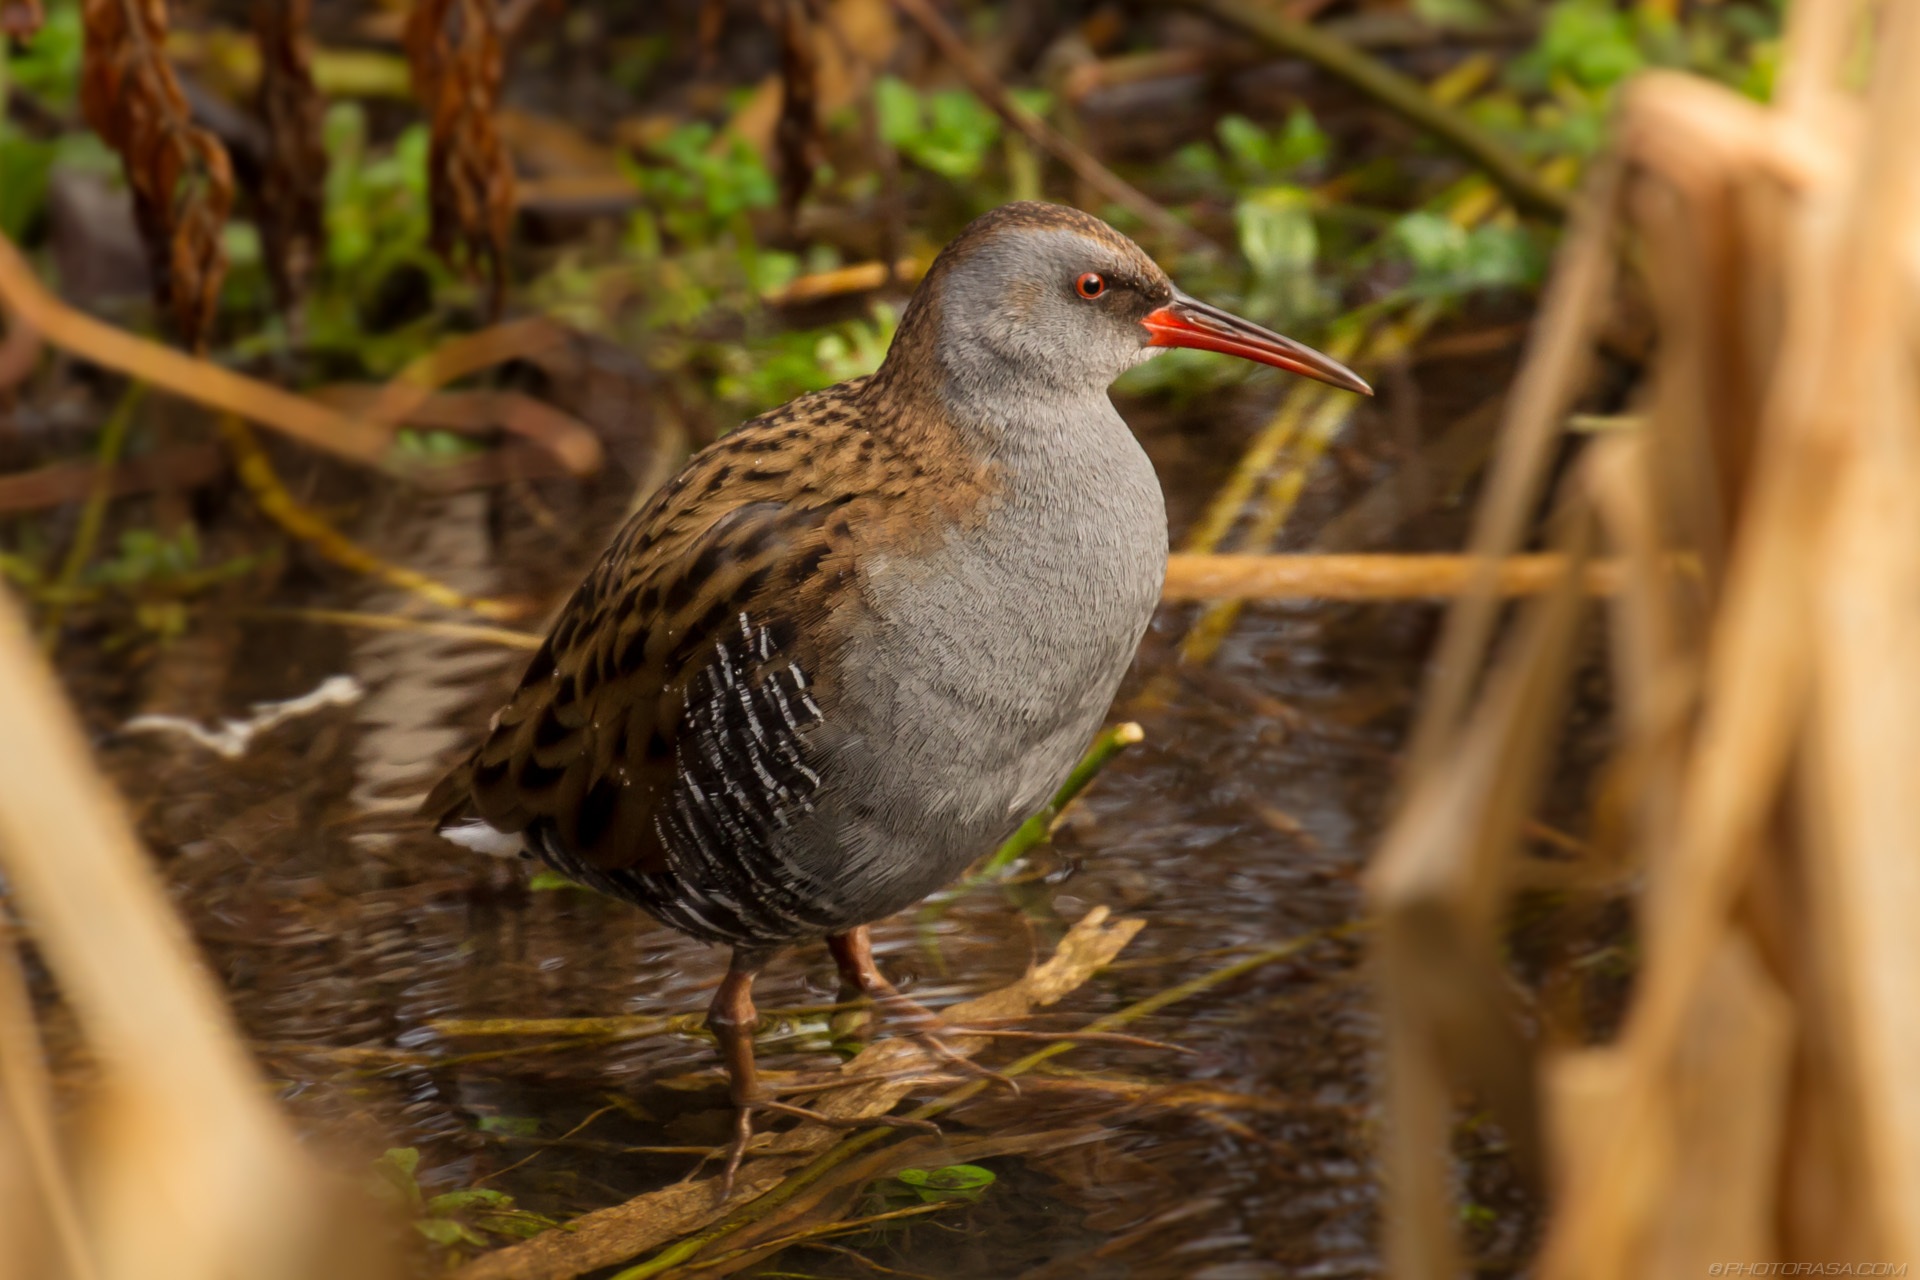 http://photorasa.com/water-rail-by-the-stream/water-rail-looking-right/